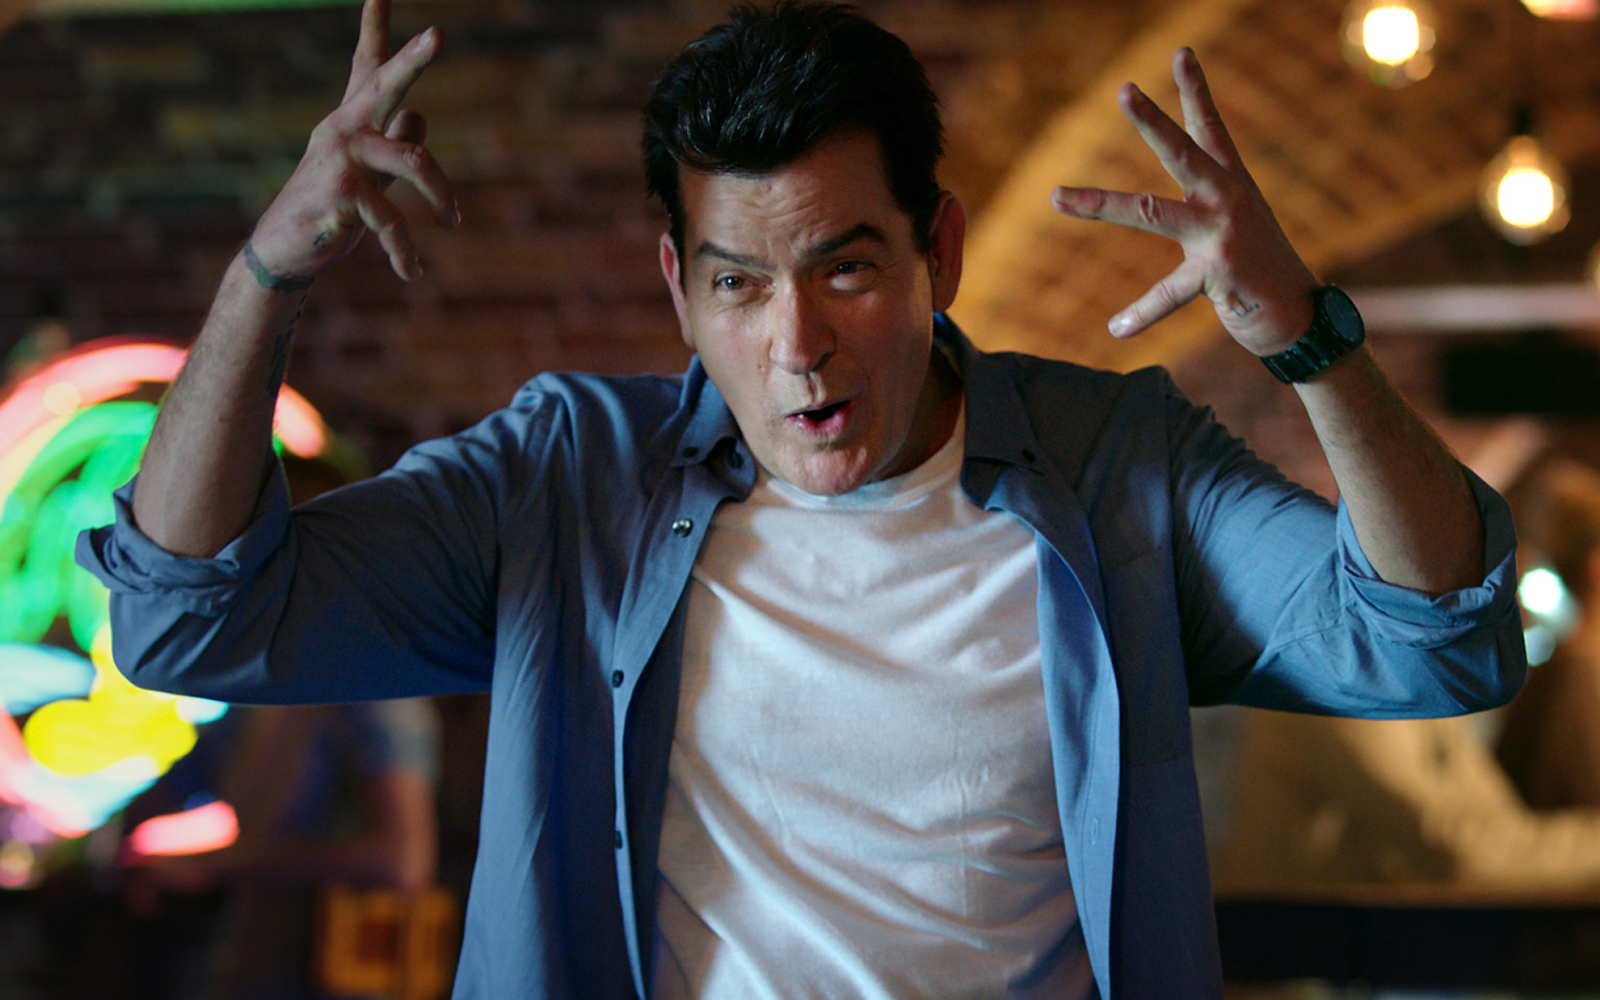 Charlie Sheen in a New Show